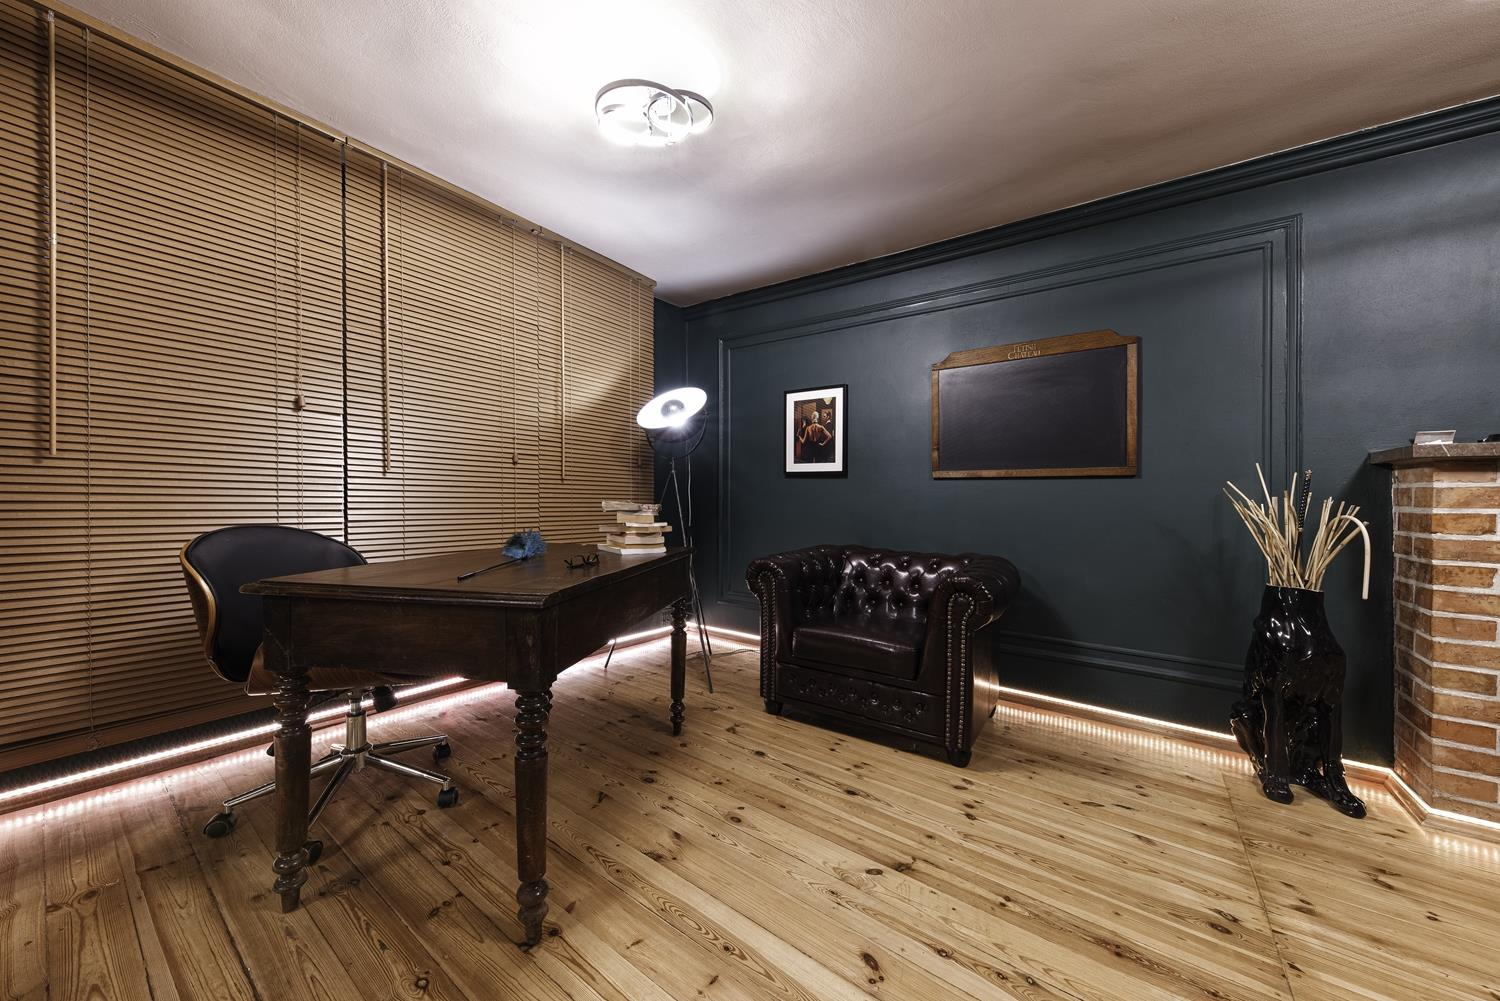 The Office Room